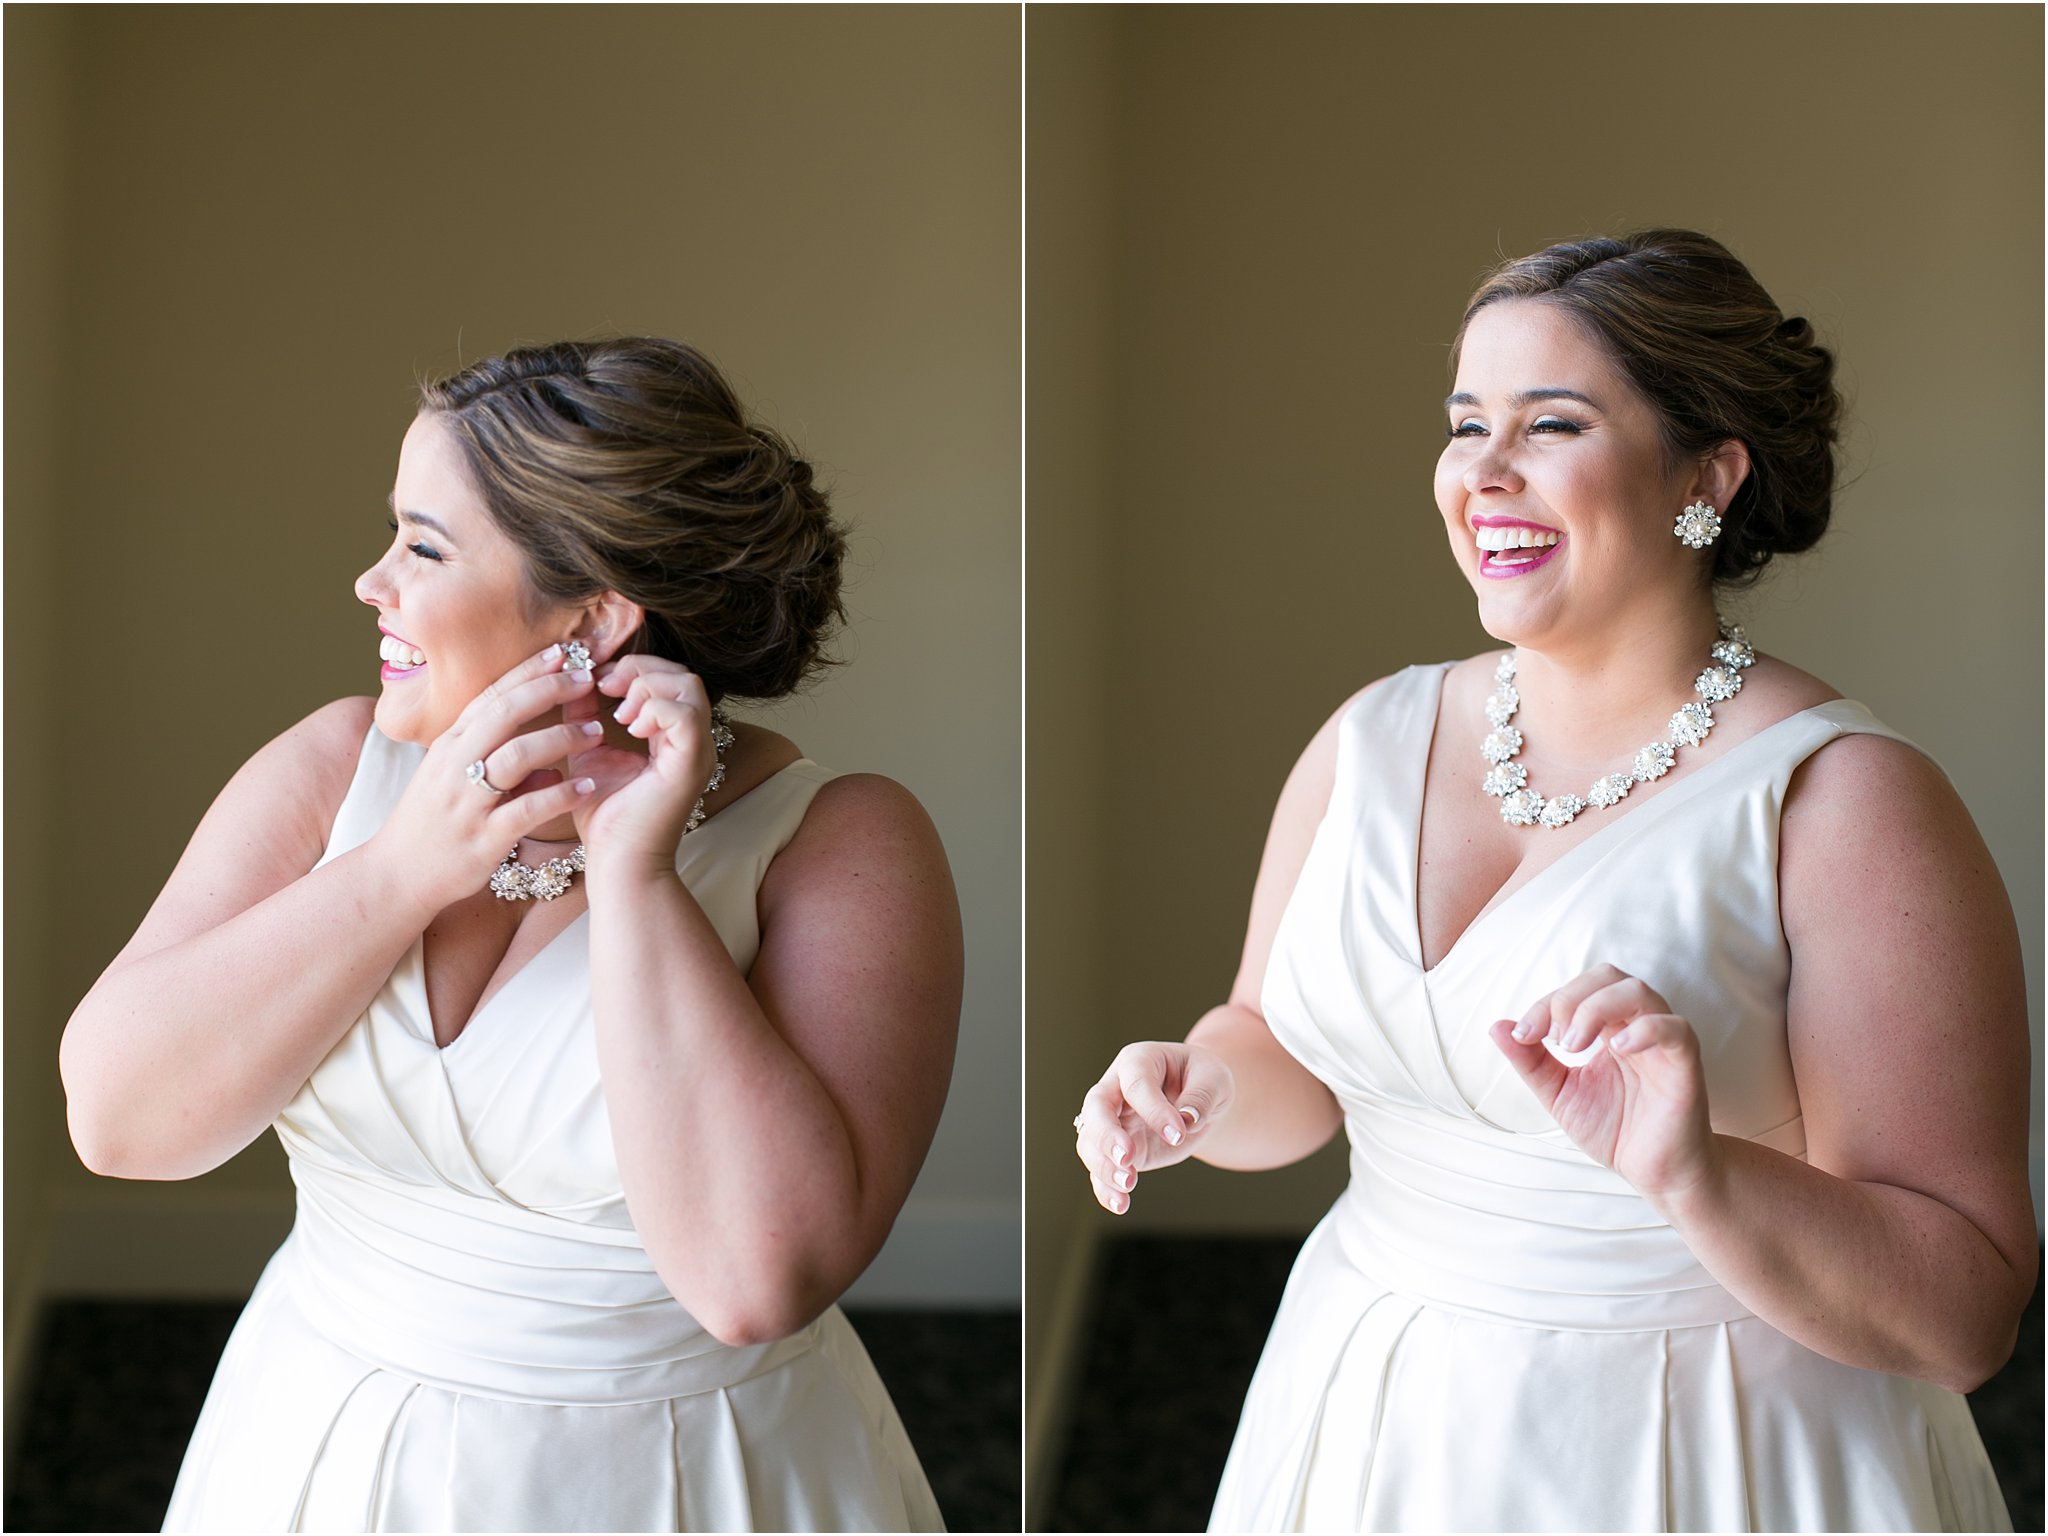 va_jessica_ryan_photography_virginia_wedding_norfolk_harrison_opera_house_norfolk_arts_district_portraits_3767